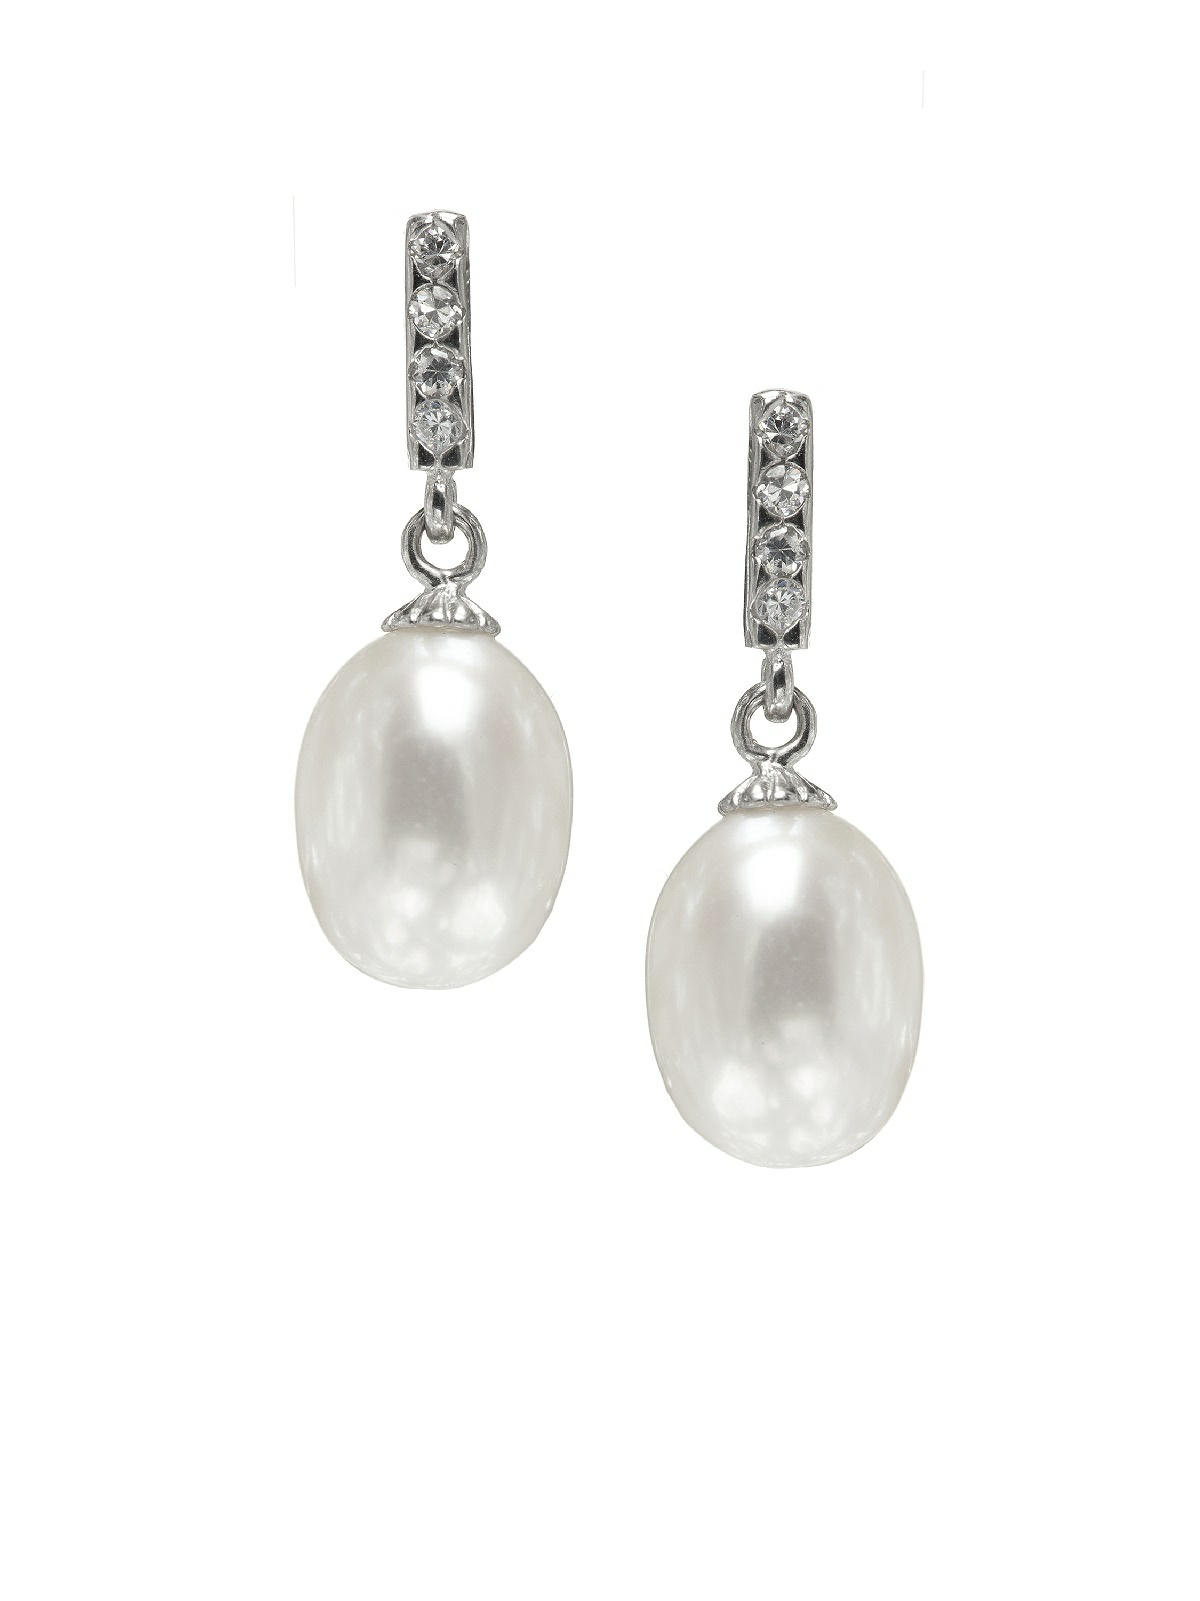 Pearl Deco Drop Earrings: The Dessy Group